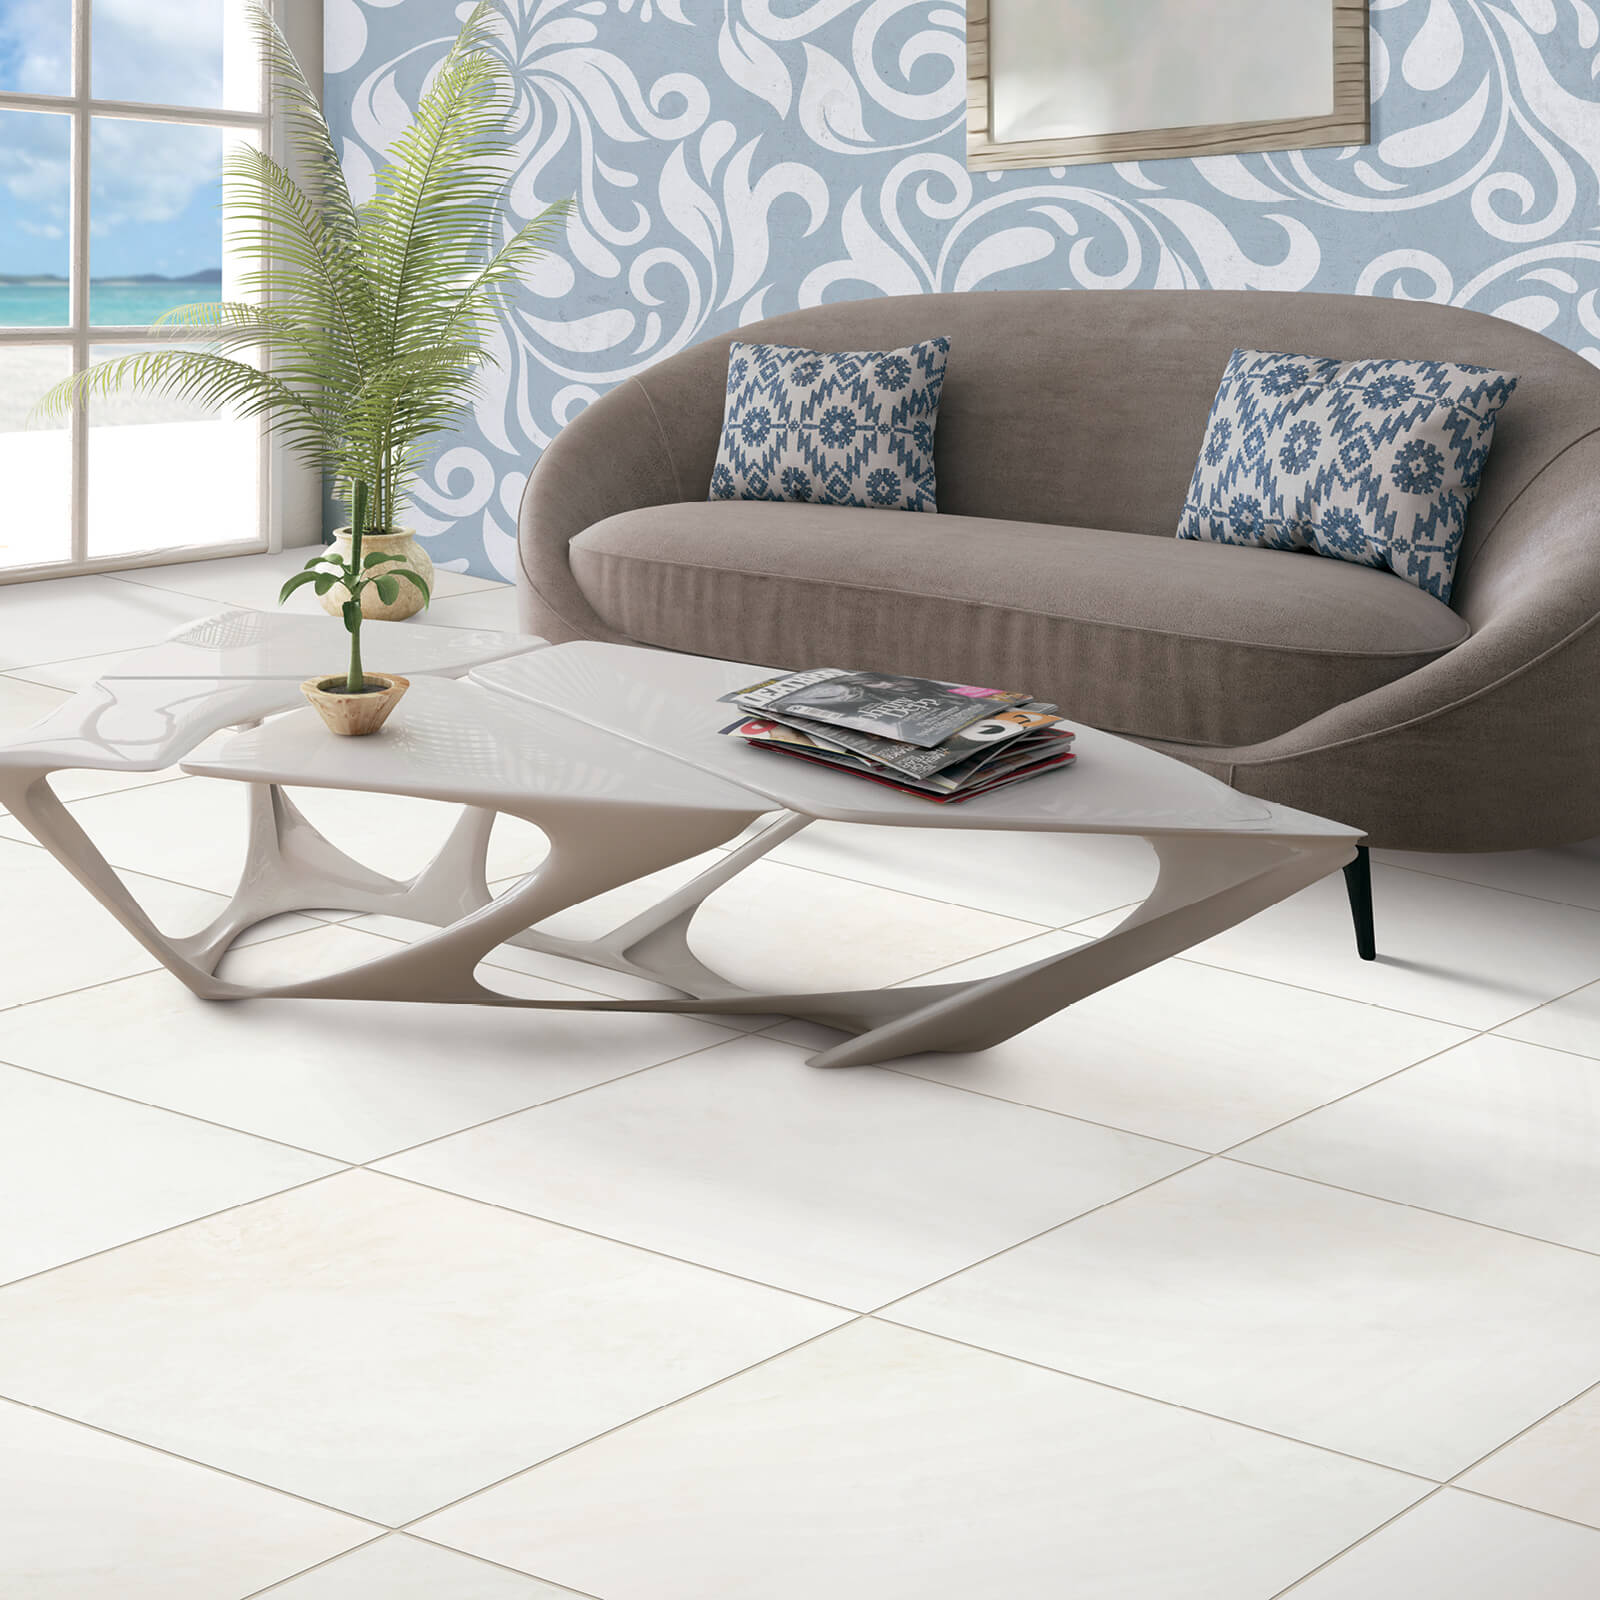 Rectified Tile by Love Seat